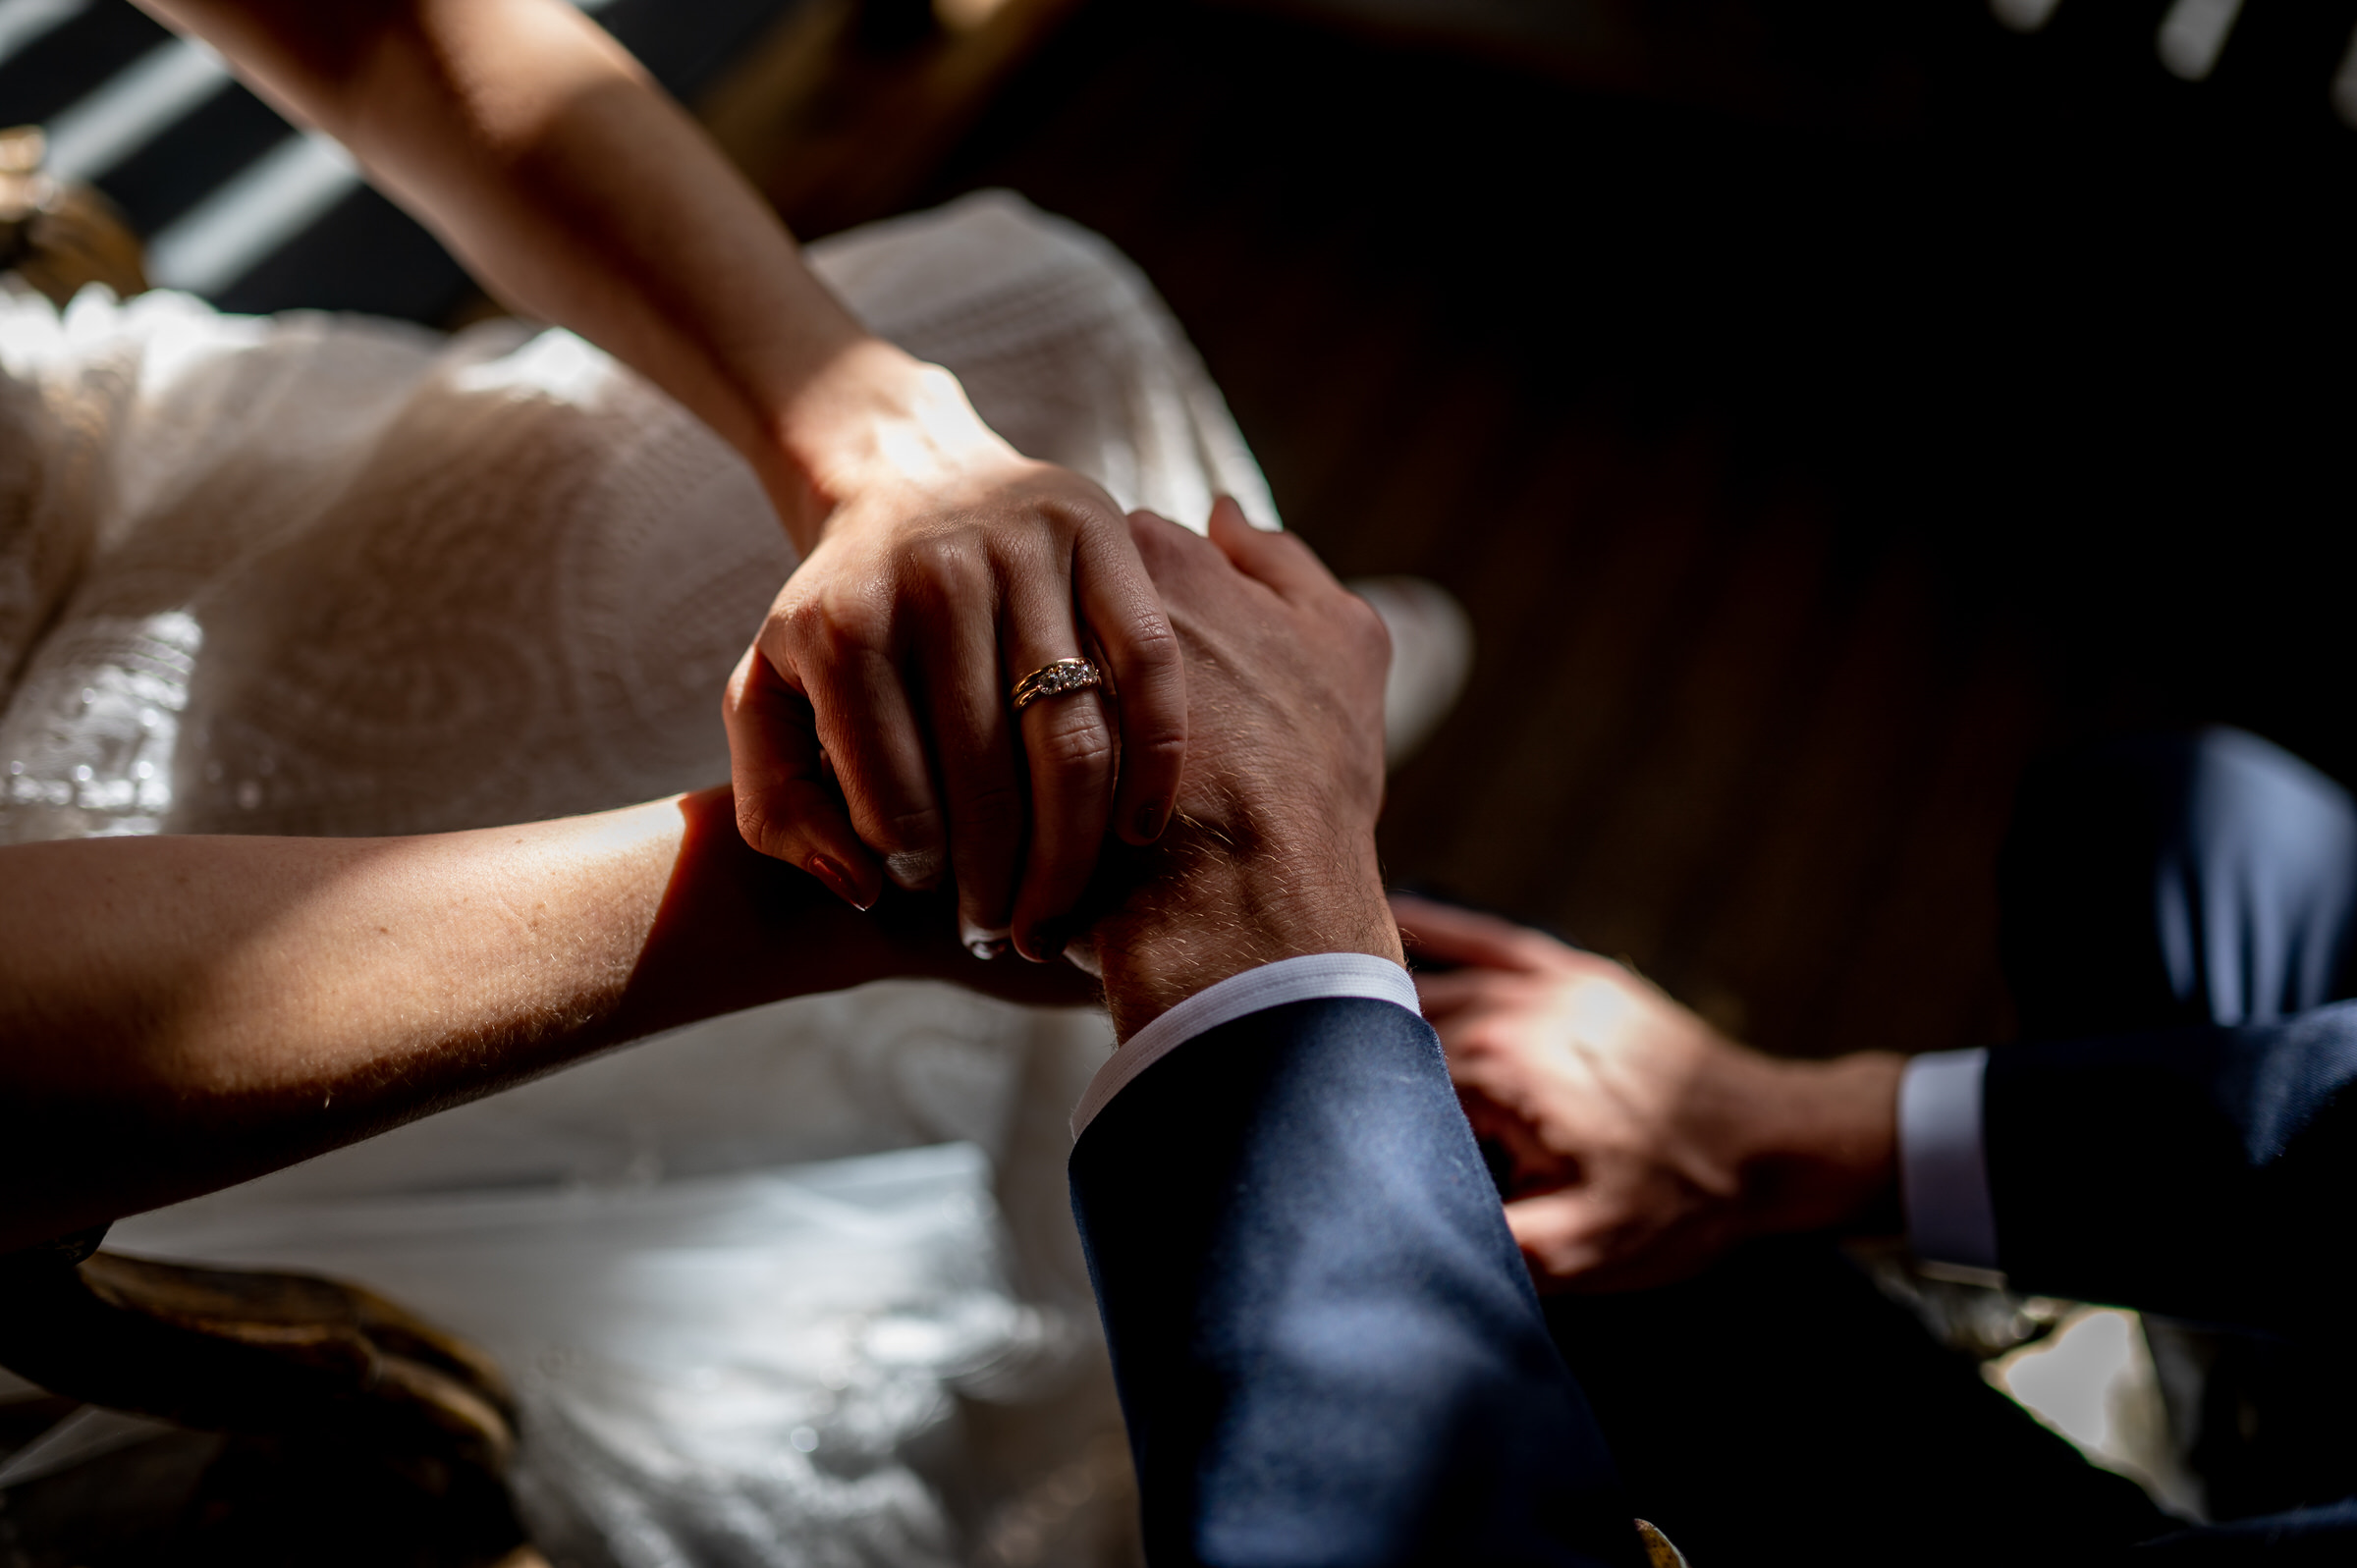 Couple's hands - photo by John Gillooley